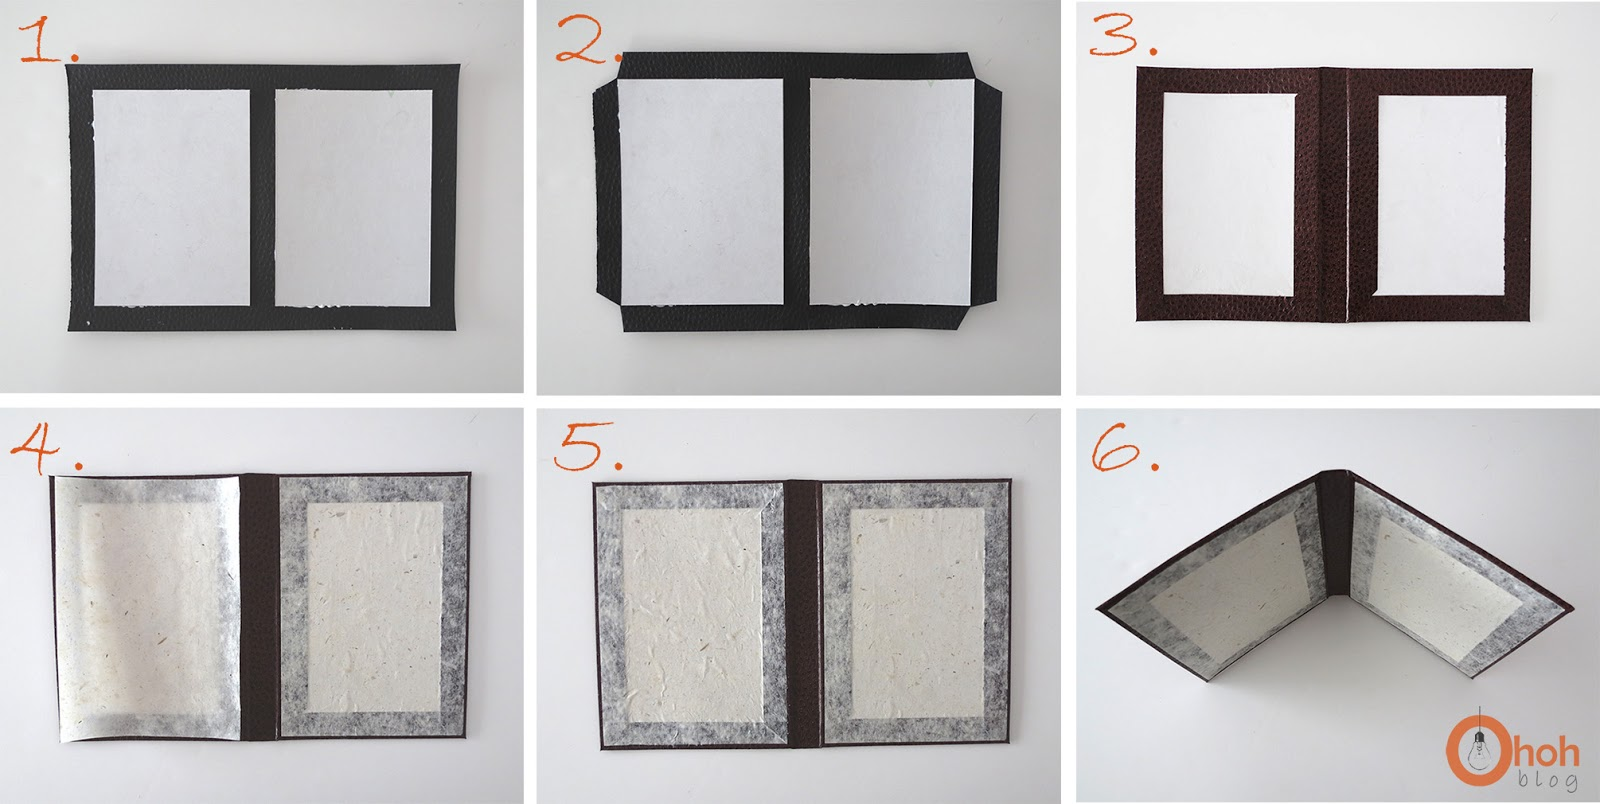 Ordinary Diy Picture Frame Part - 4: Ordinary Diy Picture Frame Design